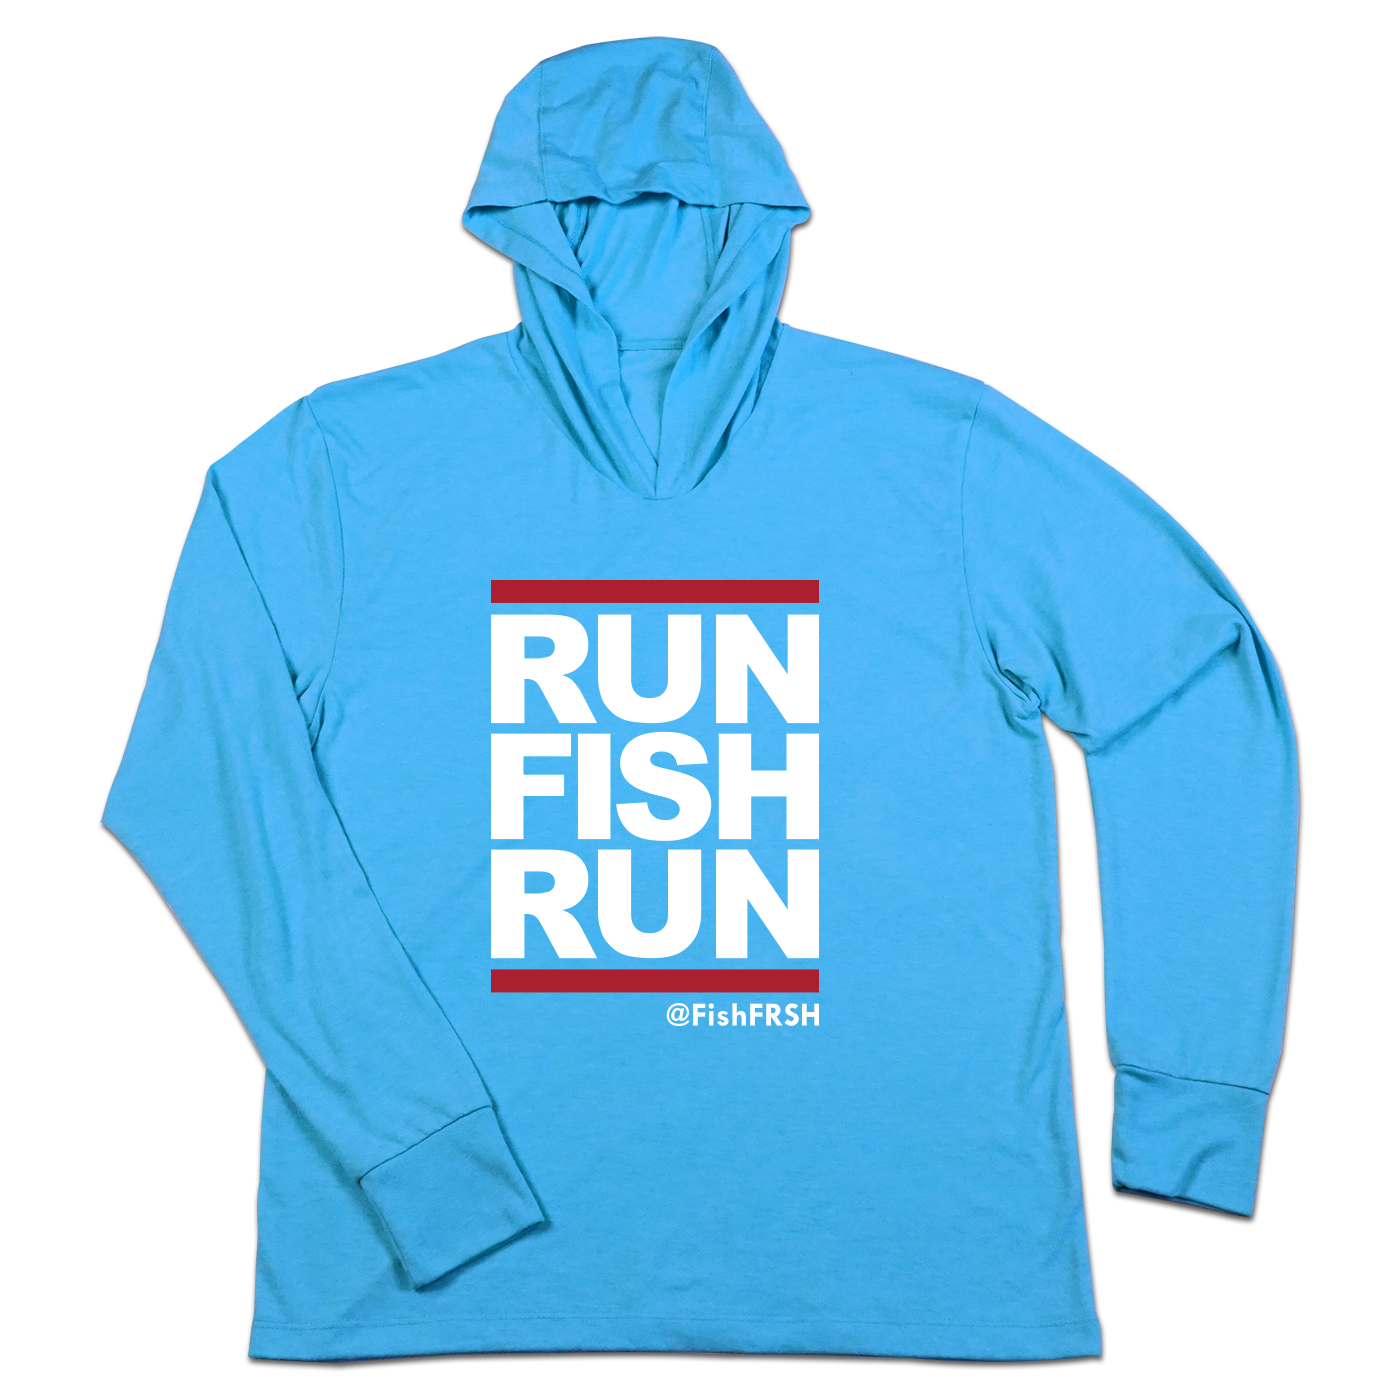 #RUNFISHRUN TriBlend Hoodie Shirt - Hat Mount for GoPro